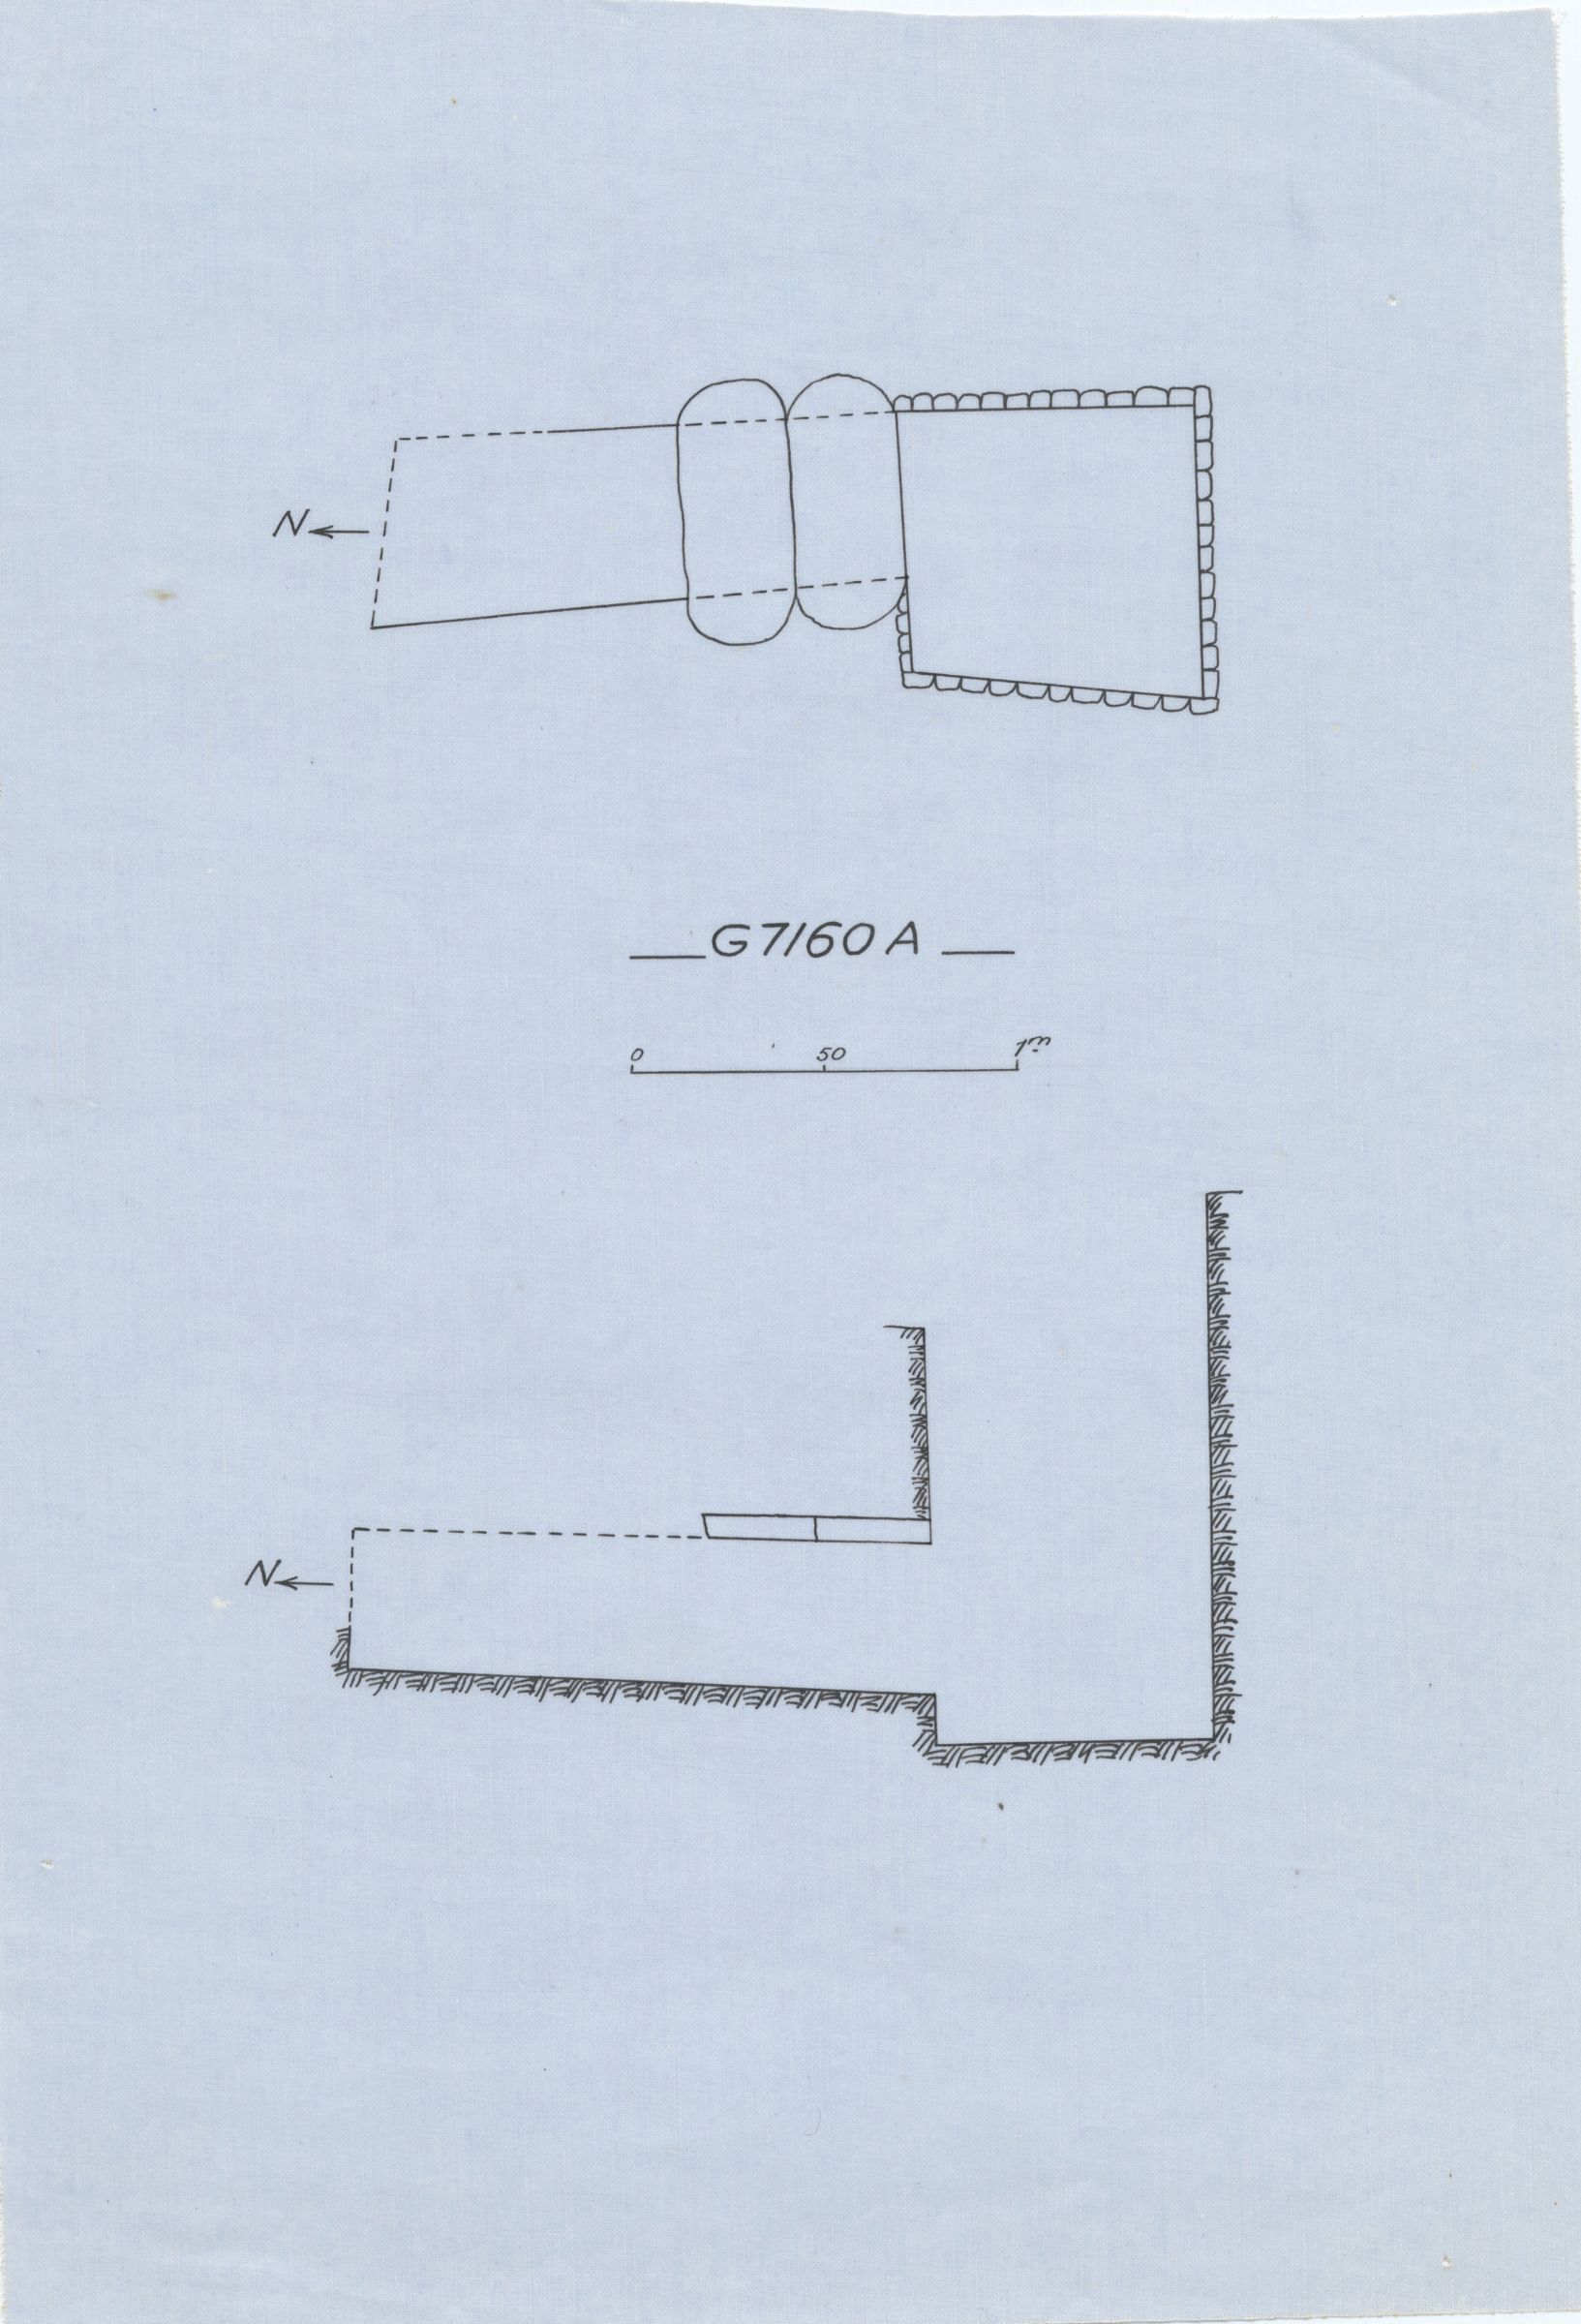 Maps and plans: G 7160, Shaft A